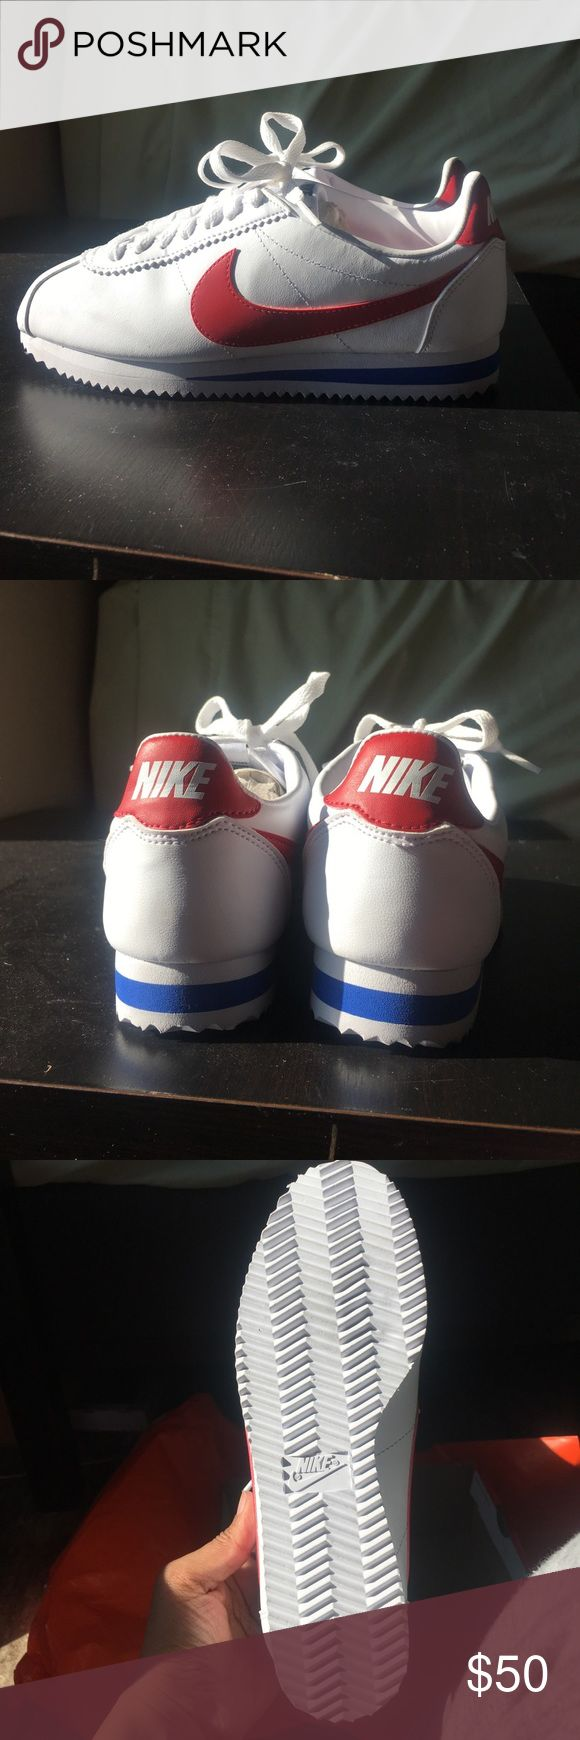 WMNS Classic Cortez Leather The Nike Classic Cortez Women's Shoe is Nike's original running shoe, designed by Bill Bowerman and released in 1972. This version features a leather and synthetic leather construction for added durability. White/Varsity Royal/Varsity Red Nike Shoes Sneakers